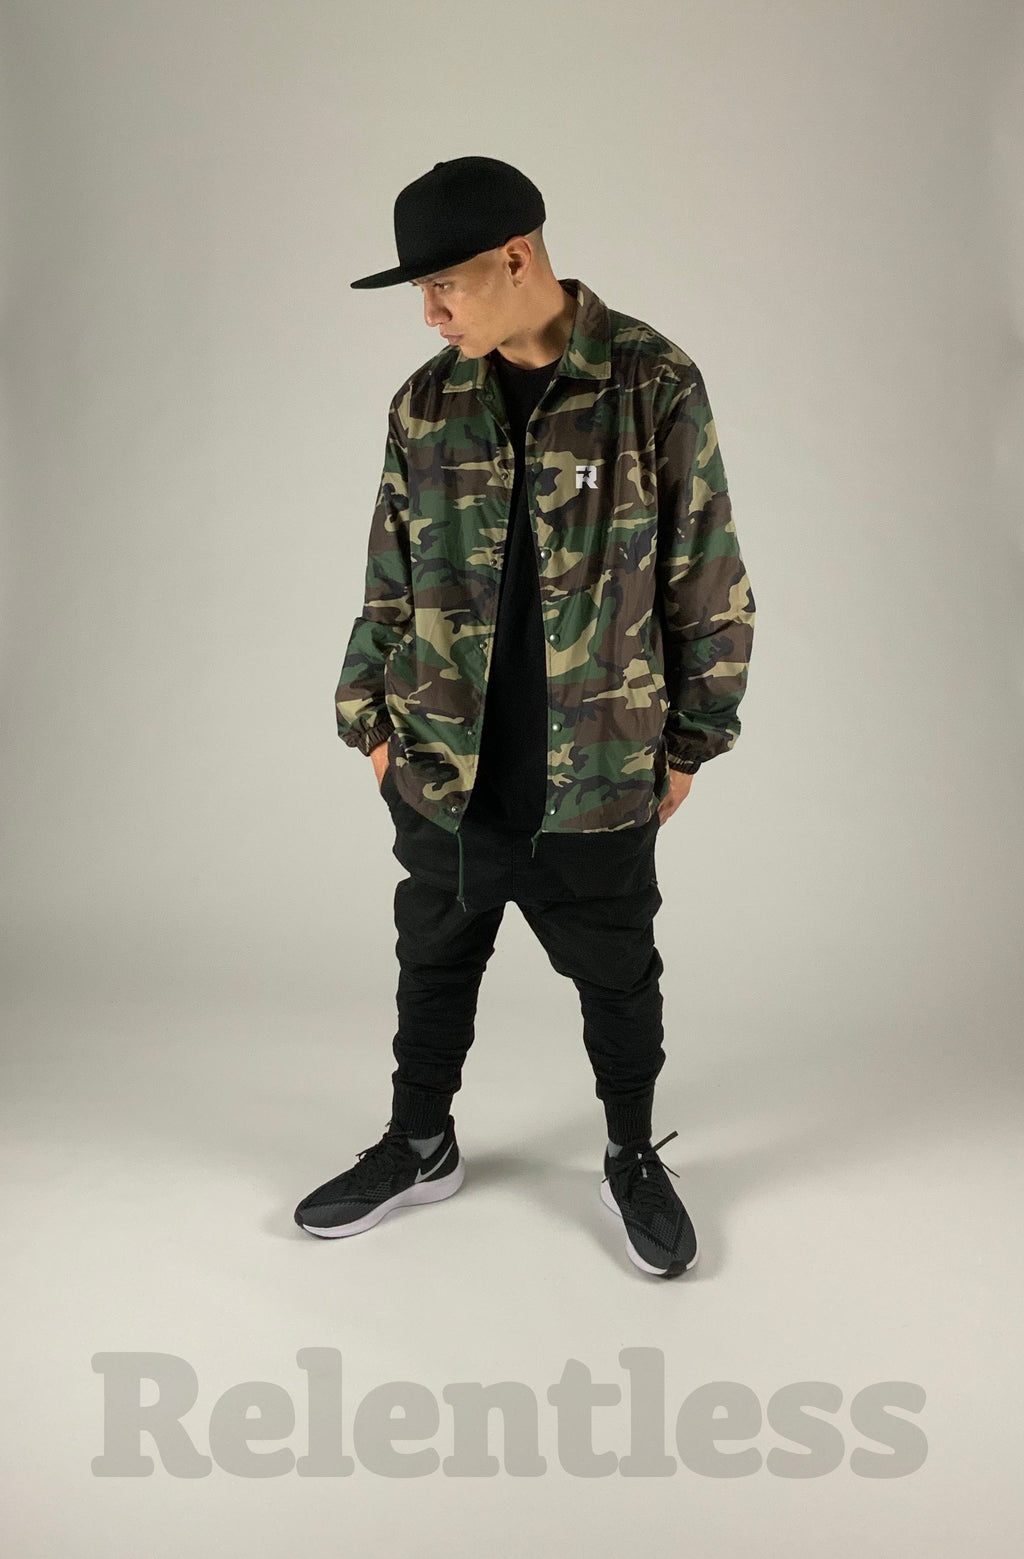 Relentless camo jacket